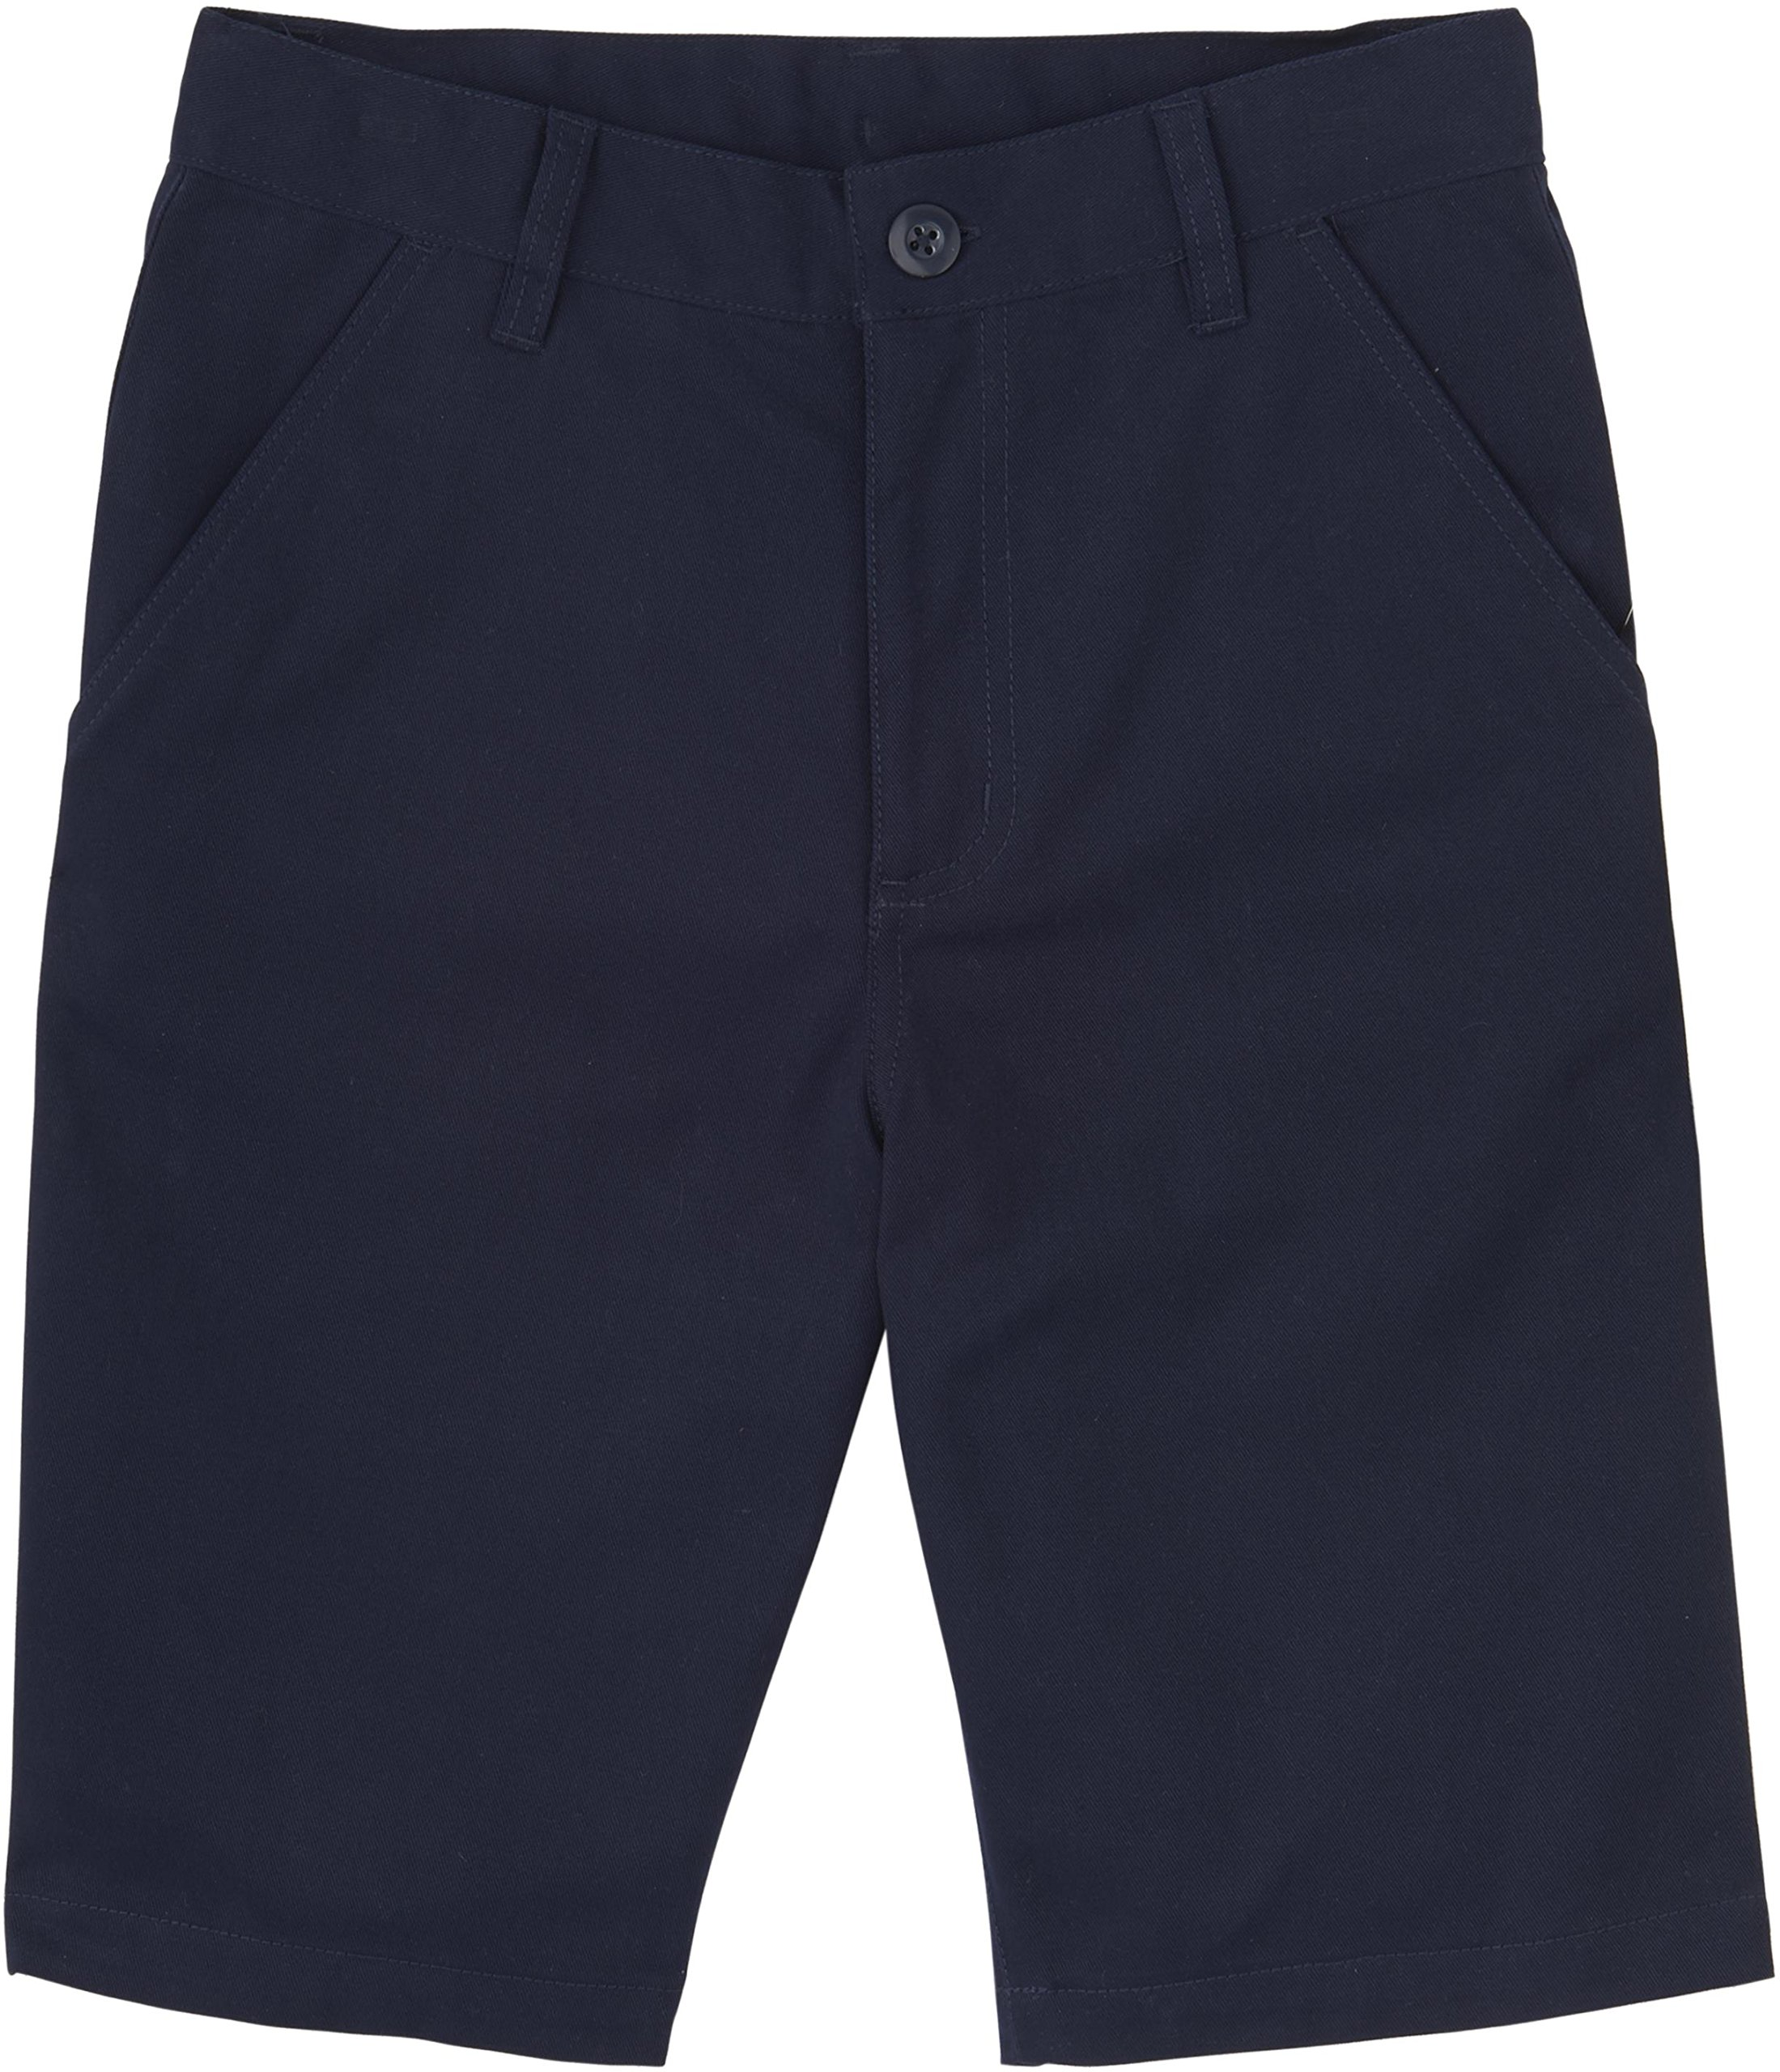 French Toast School Uniforms Boys Solid Twill Flat Front Shorts, Navy, 6